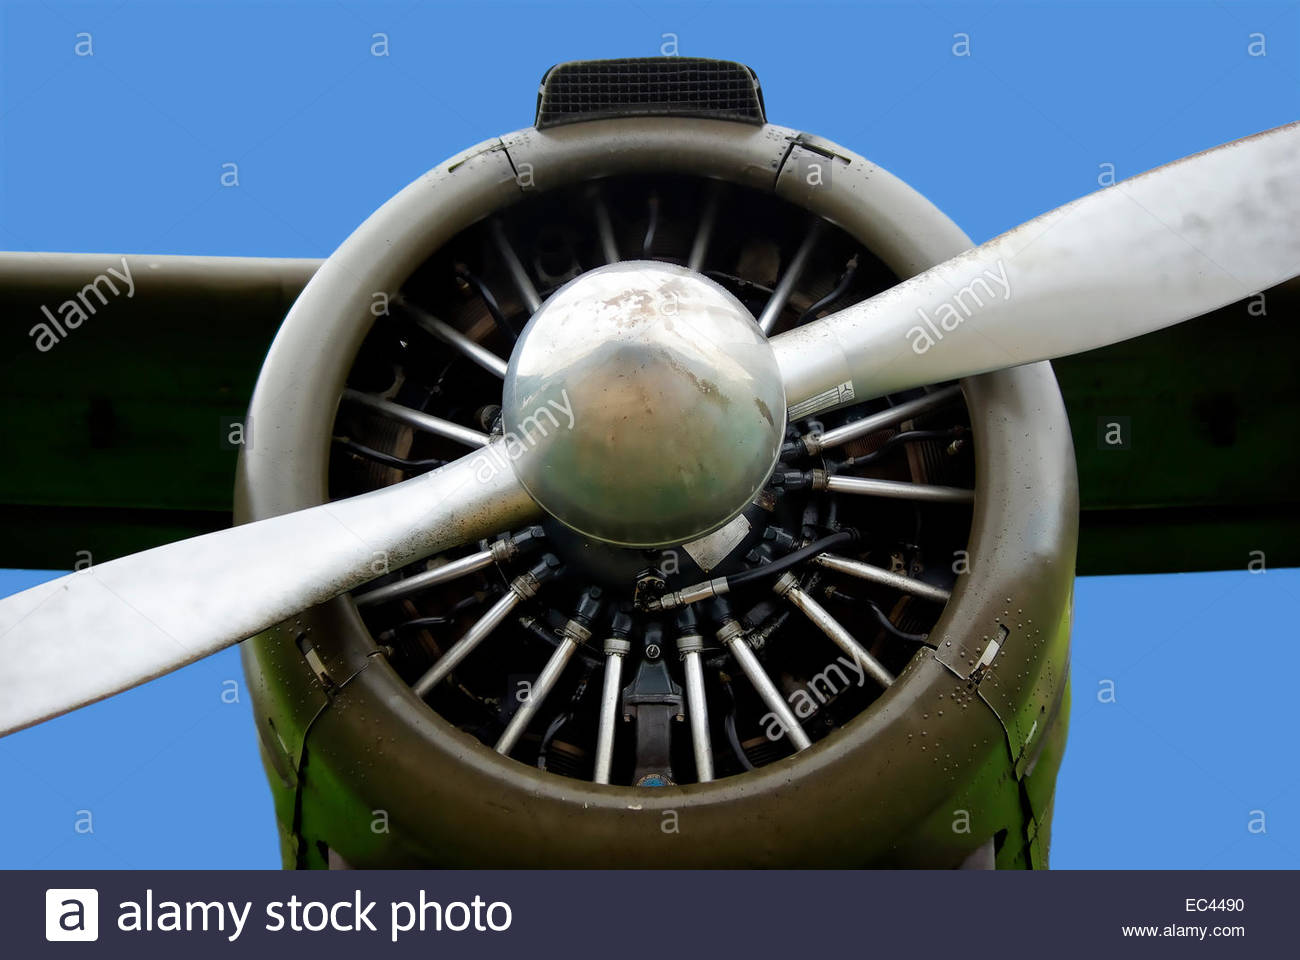 Propeller, airscrew and radial engine of an airplane - Stock Image